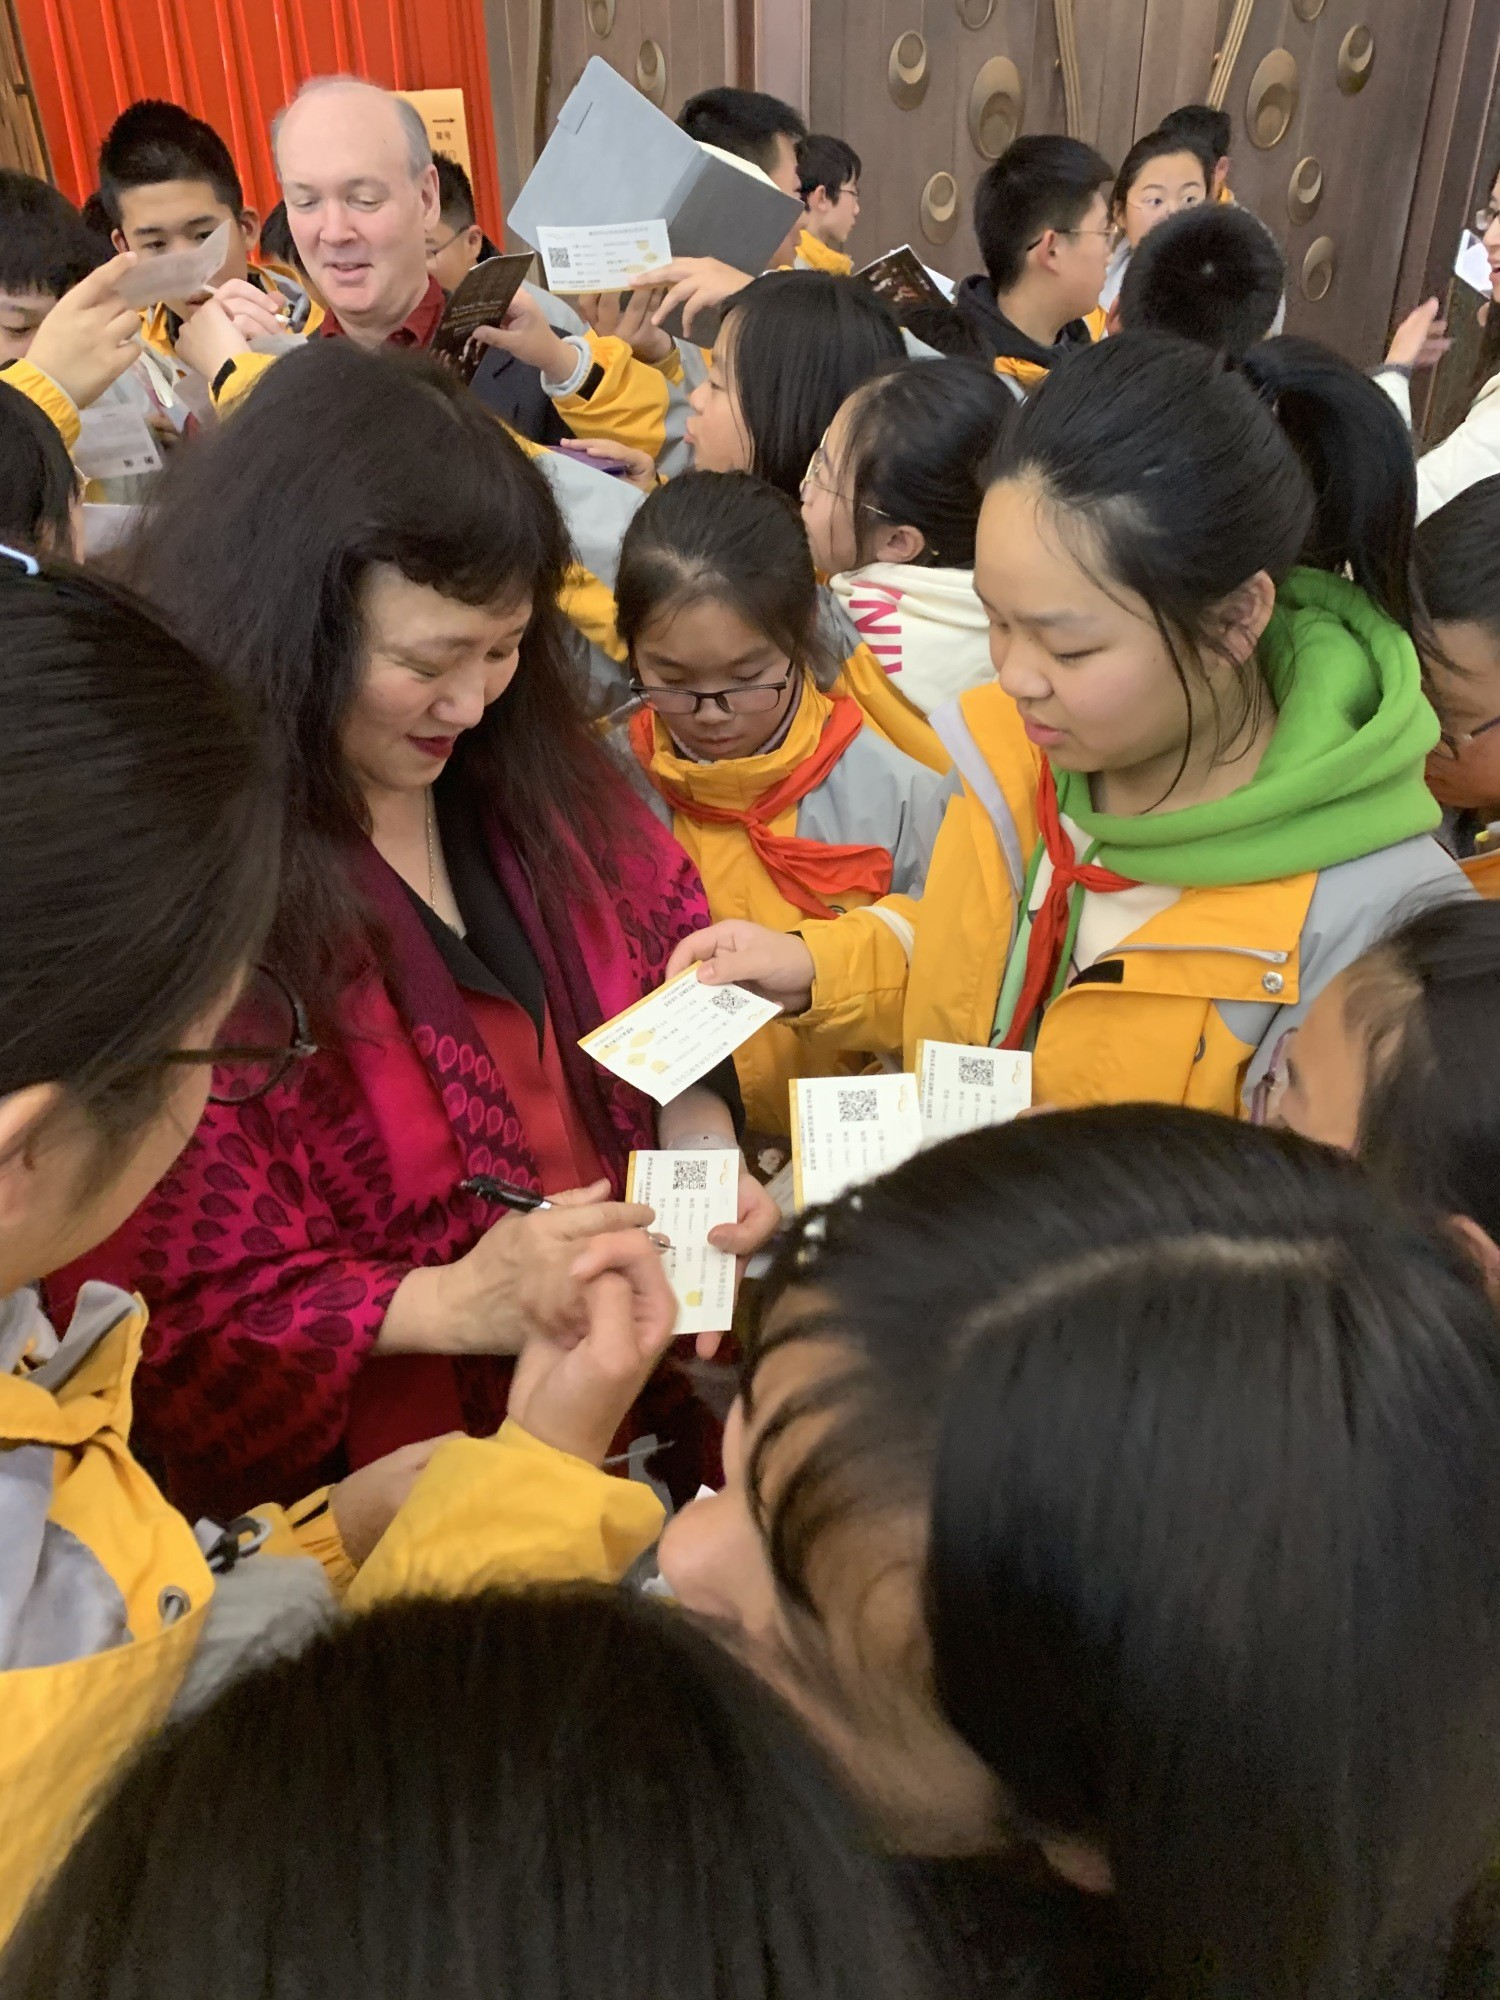 Pianist Wu Han signs autographs after a performance at Jiangsu Centre for the Performing Arts.